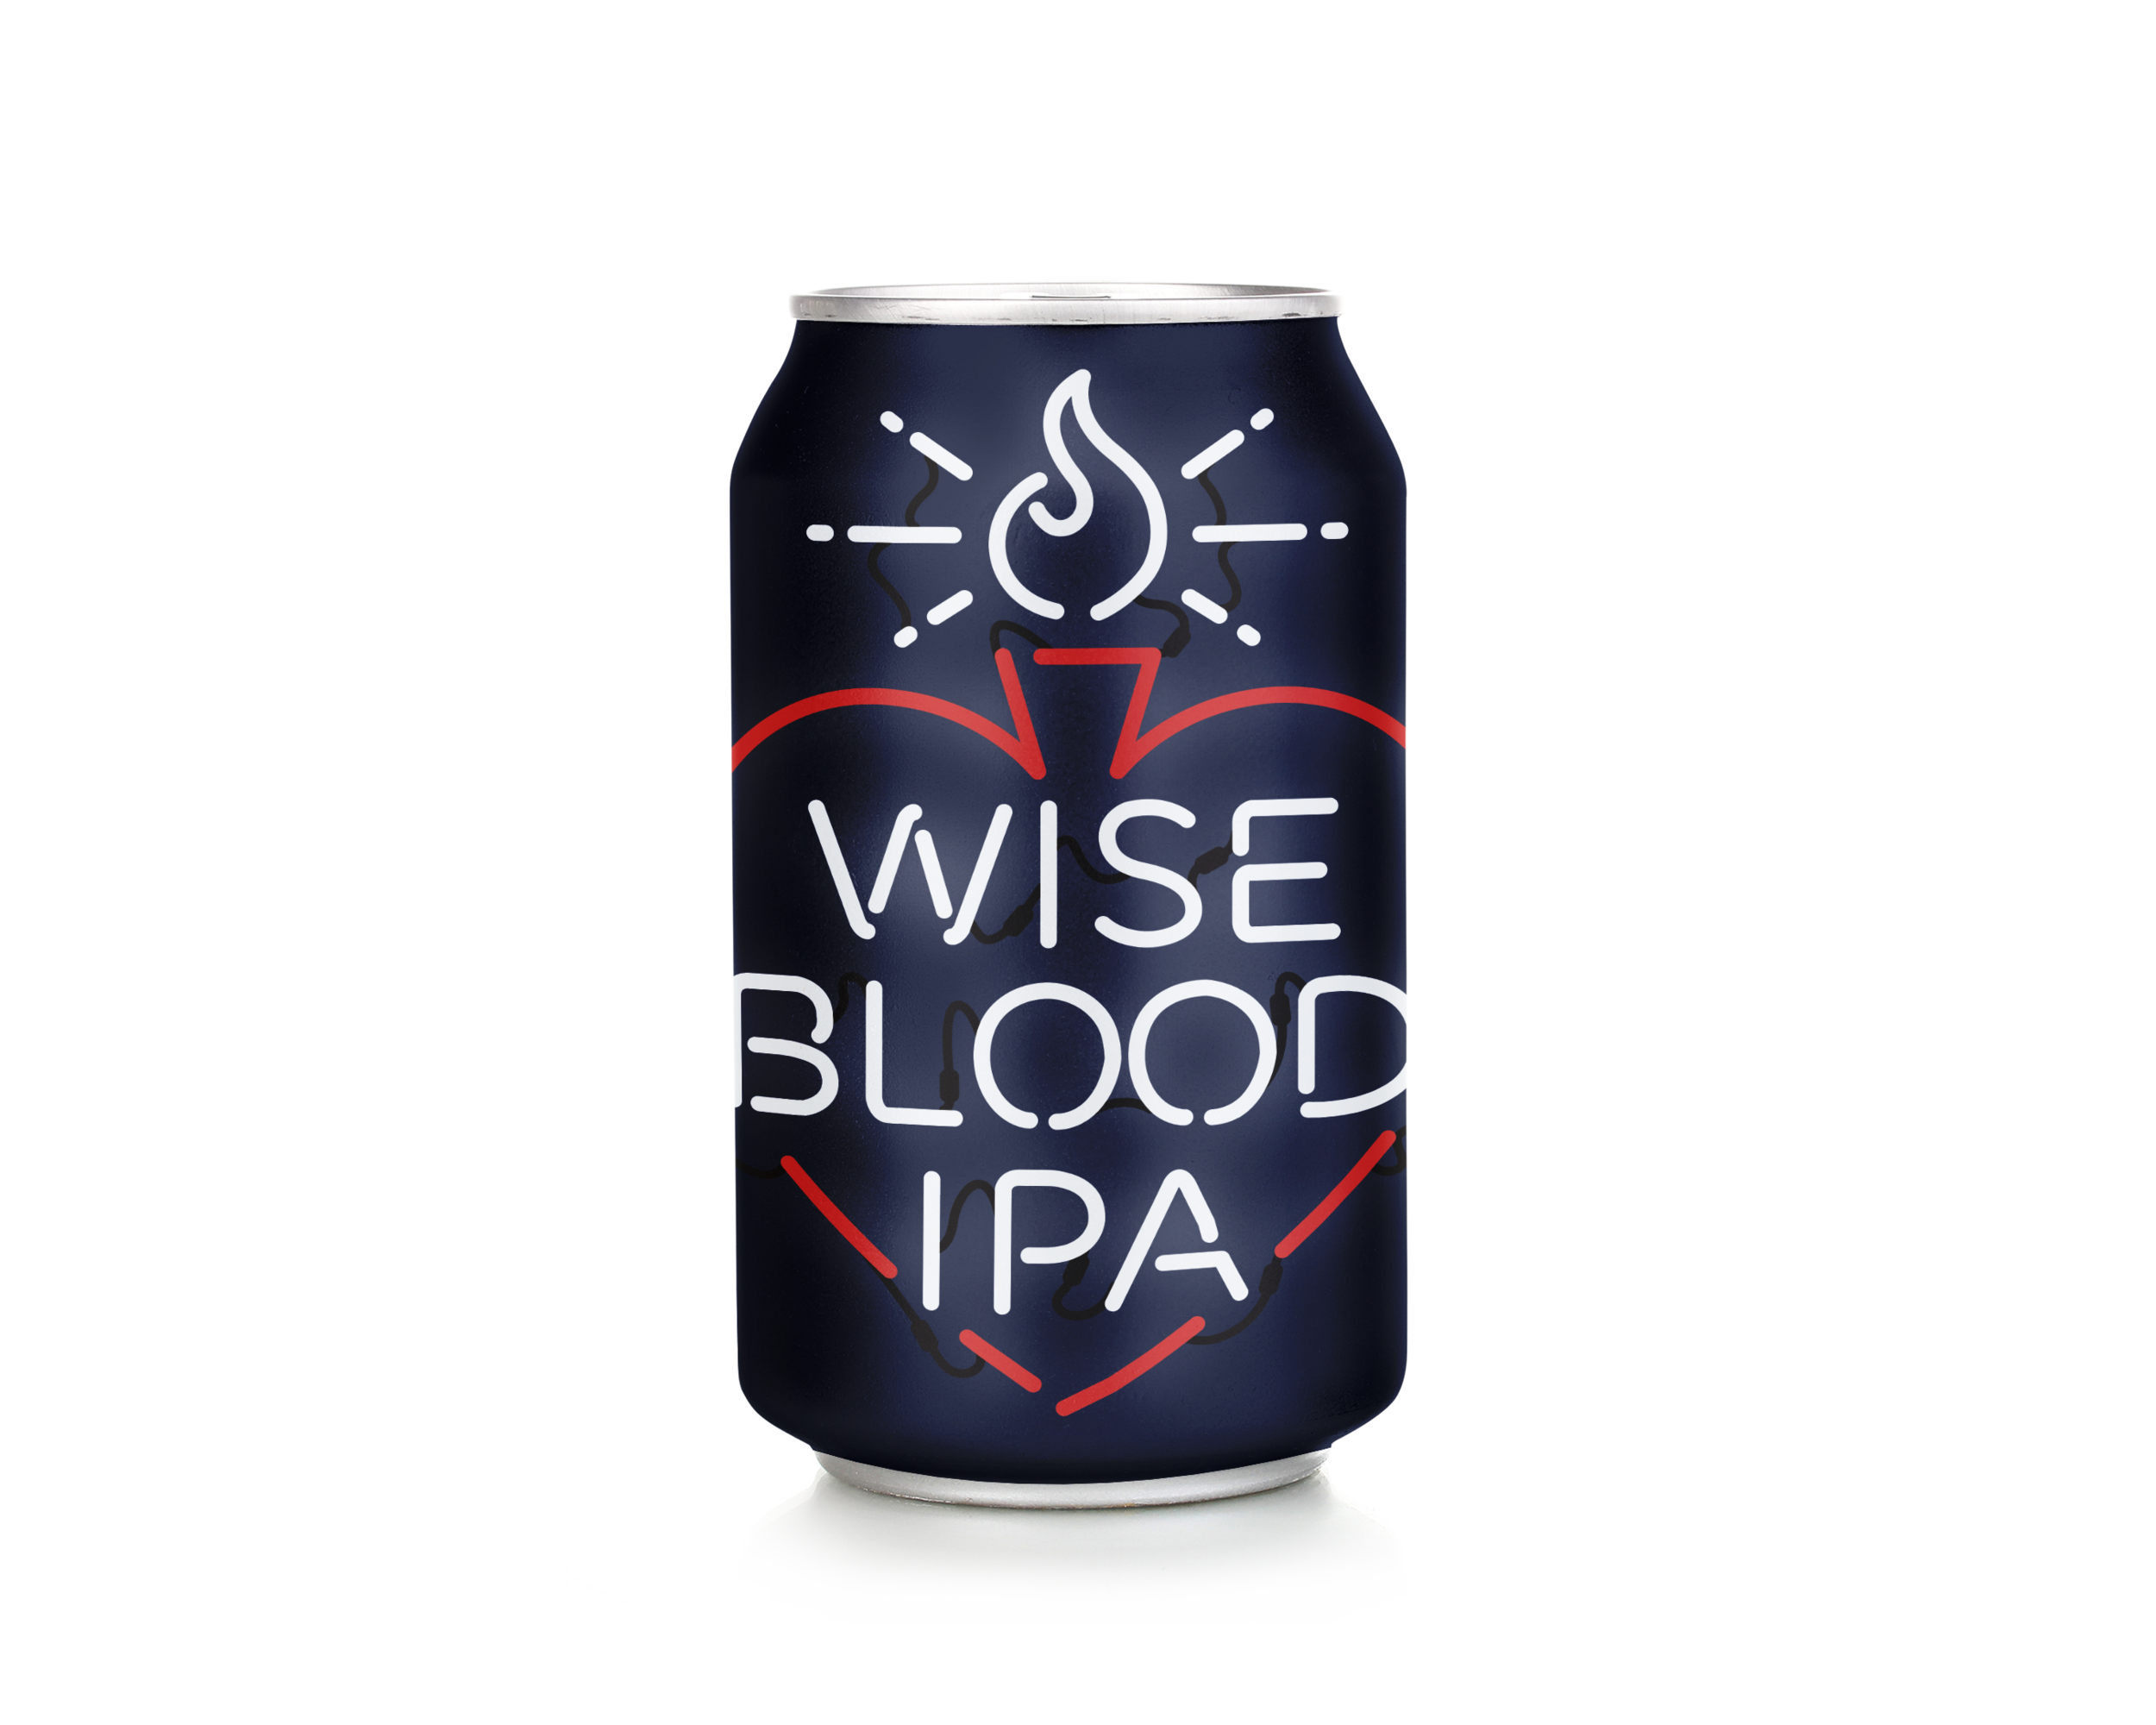 Wise Blood IPA - India Pale Ale6.8% ABVOur long-awaited India Pale Ale bursts with lush tropical fruit flavors and hints of apricot, melon and bright, sweet orange. Wise Blood IPA starts with a vibrant hop aroma and finishes dry and clean with lingering notes of pine and citrus.Suggested food pairings: Wings, fish & chips, Tomme-style cheese, brunch (the citrus picks up nicely), burgers.